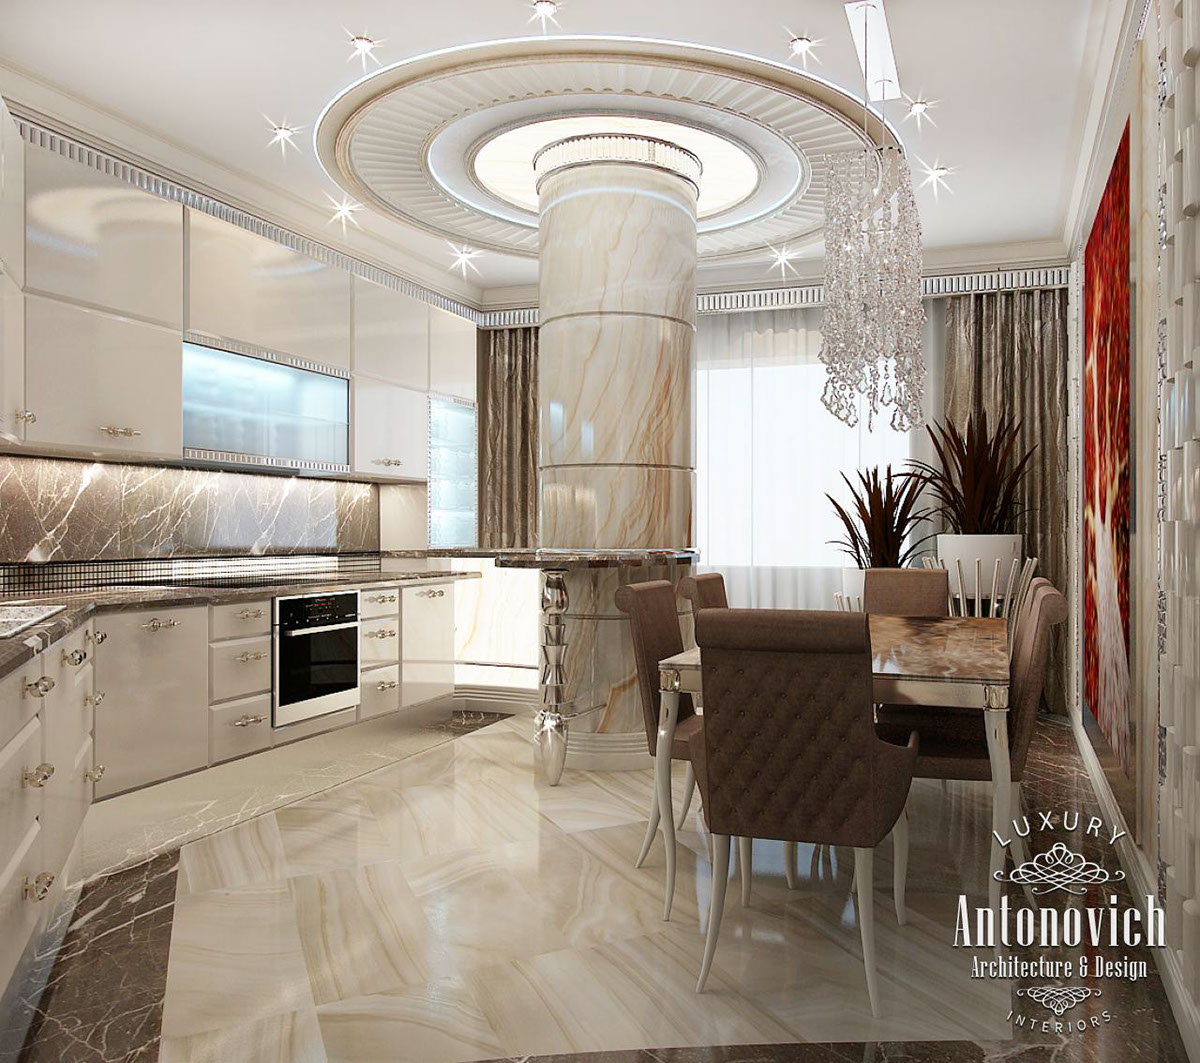 Katrina Antonovich Luxury Interior Design: Kitchen Dubai From Luxury Antonovich Design On Behance